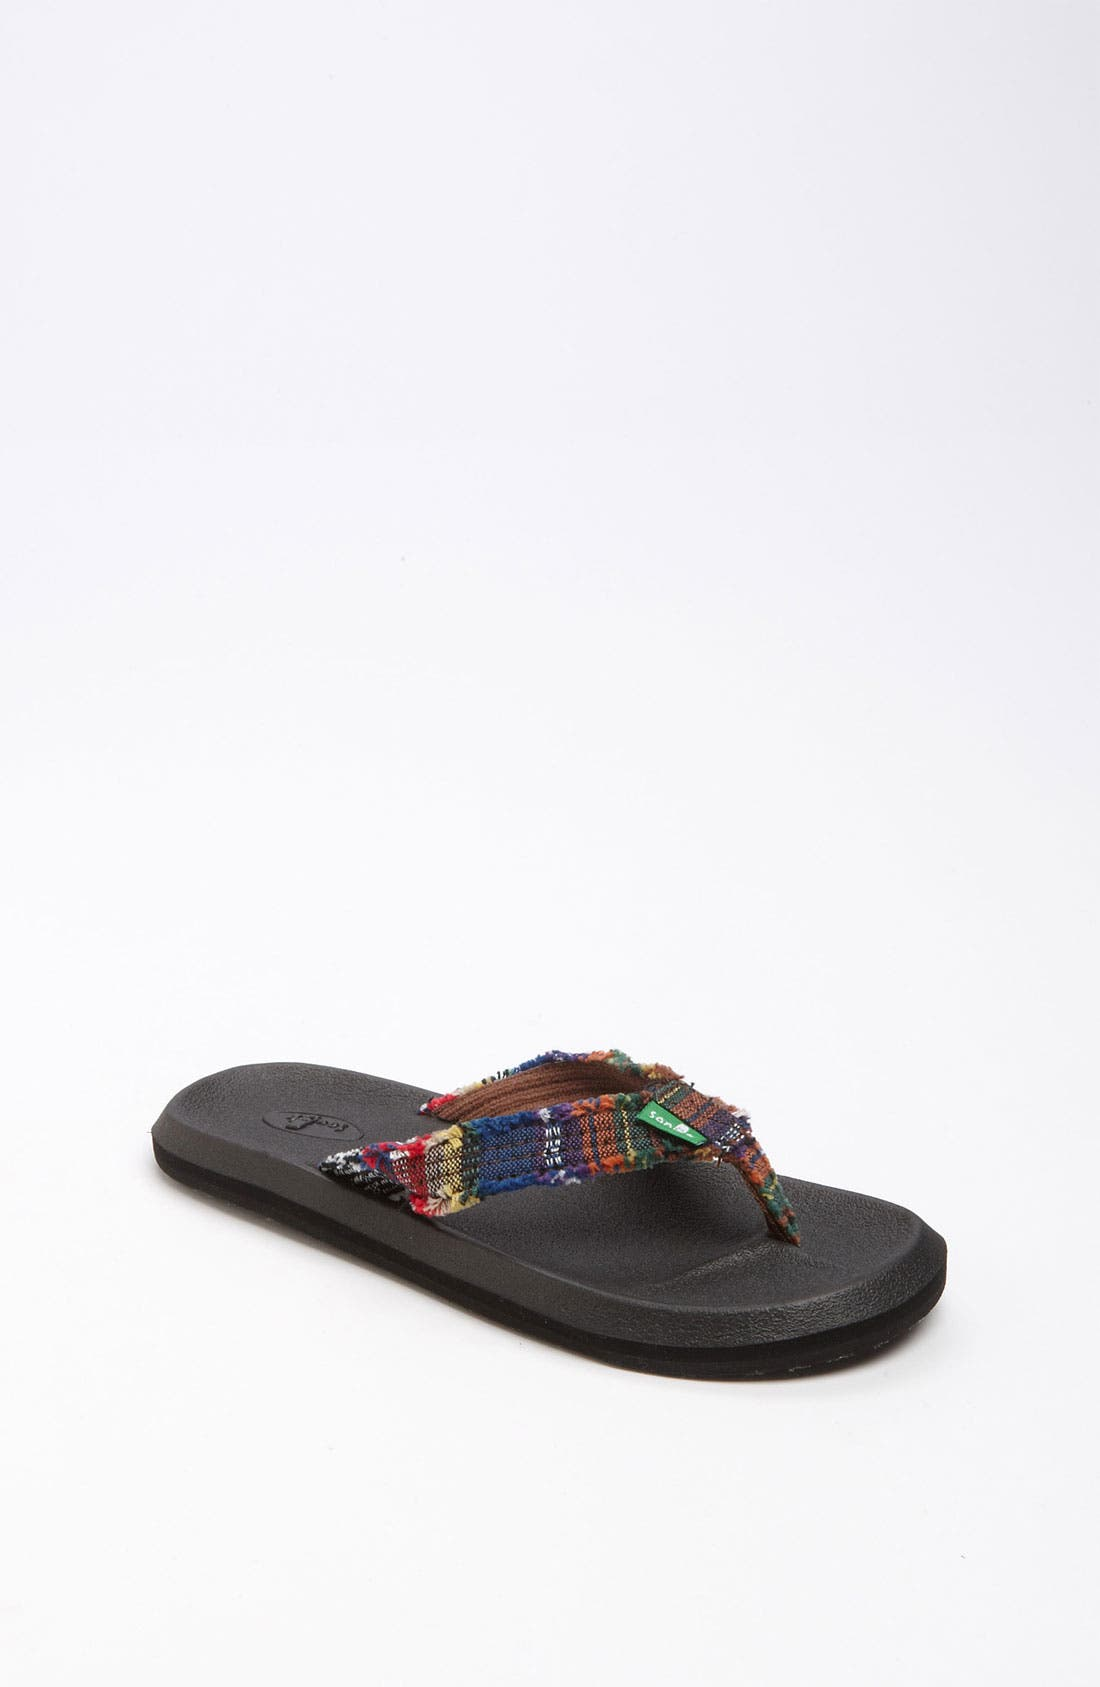 Alternate Image 1 Selected - Sanuk 'Who's Afraid' Flip Flop (Toddler, Little Kid & Big Kid)